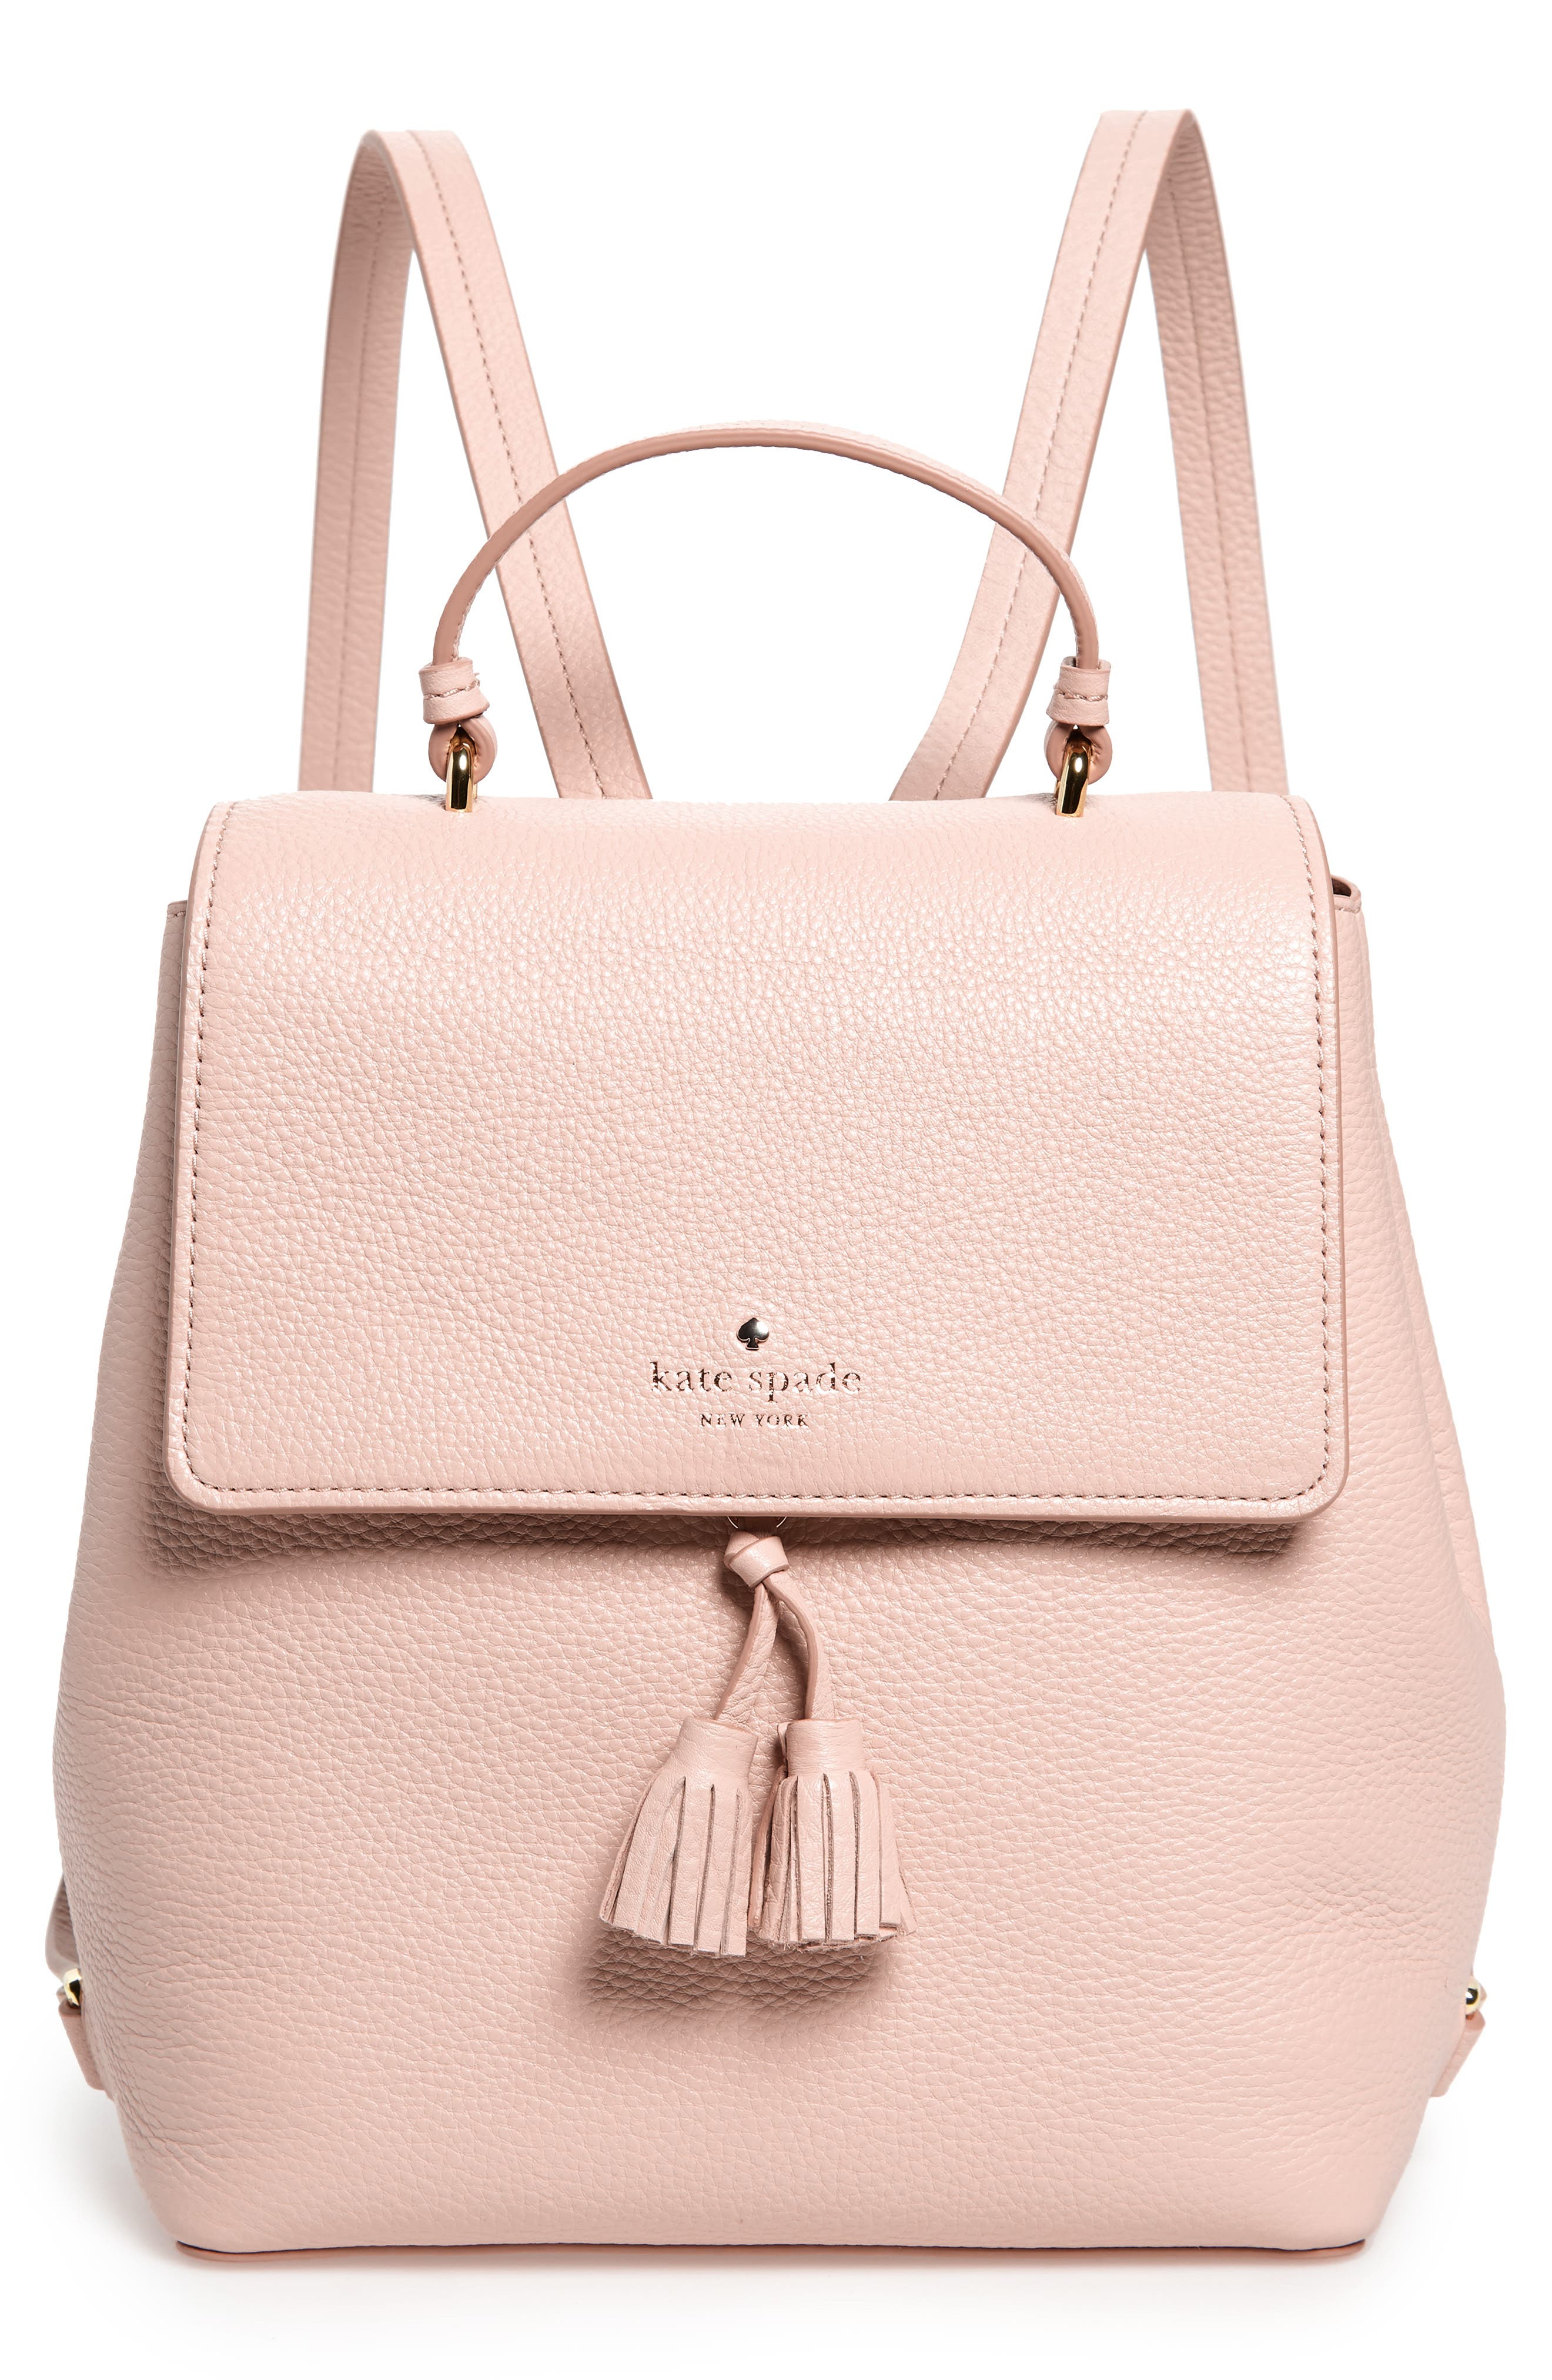 Hayes Street - Teba Leather Backpack - Pink in Warm Vellum